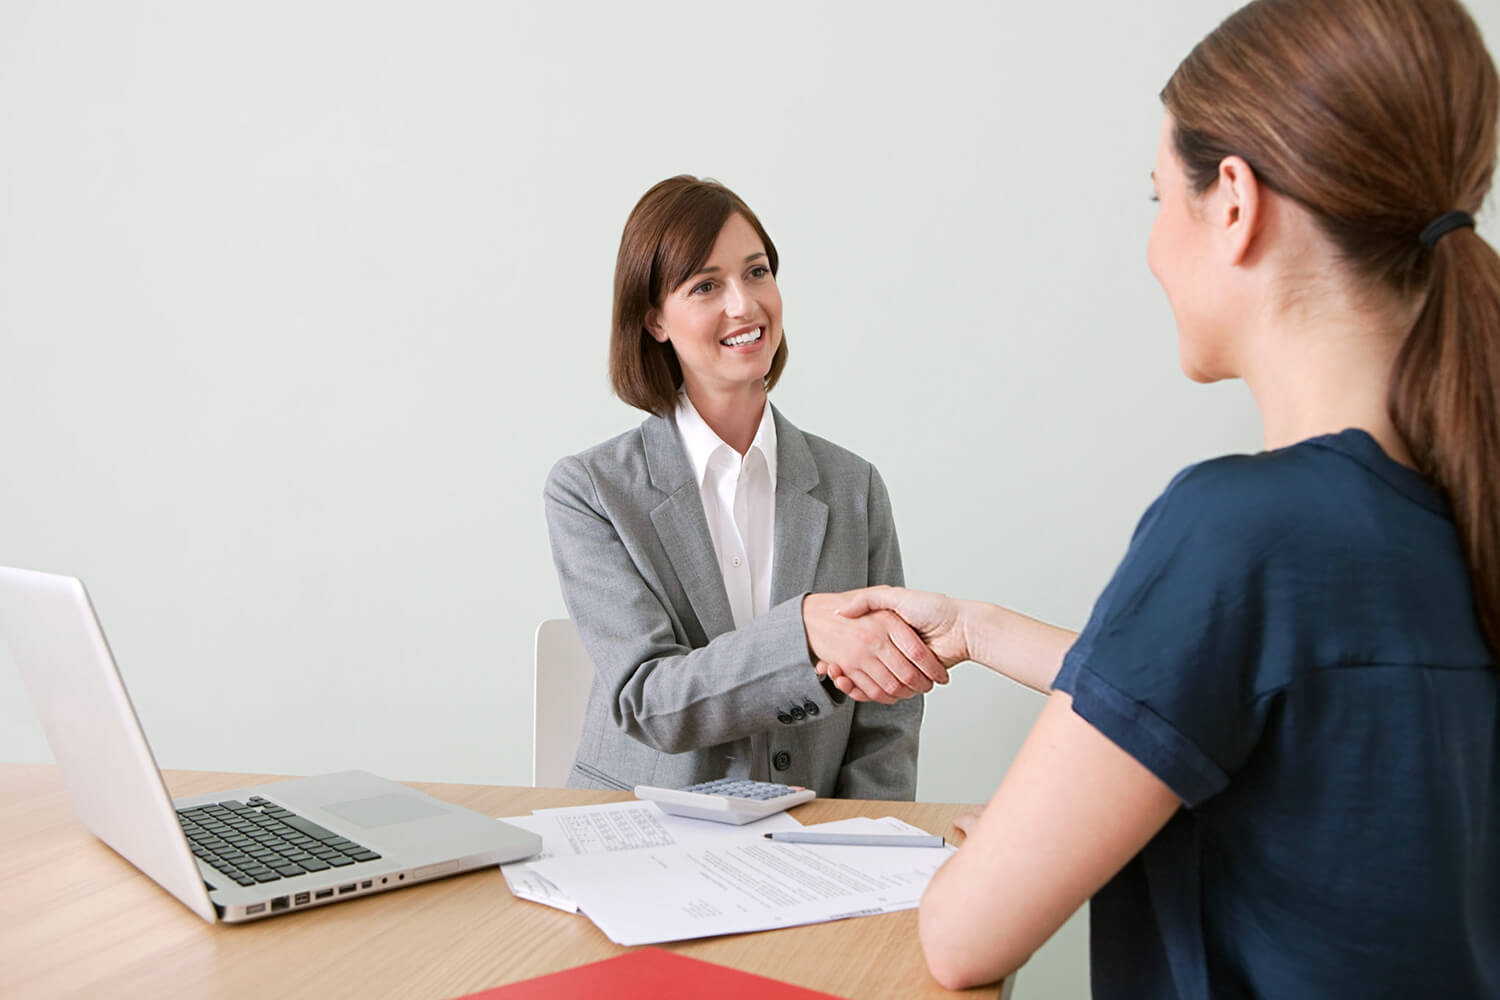 8 Pointers for Acing Your CNA Job Interview